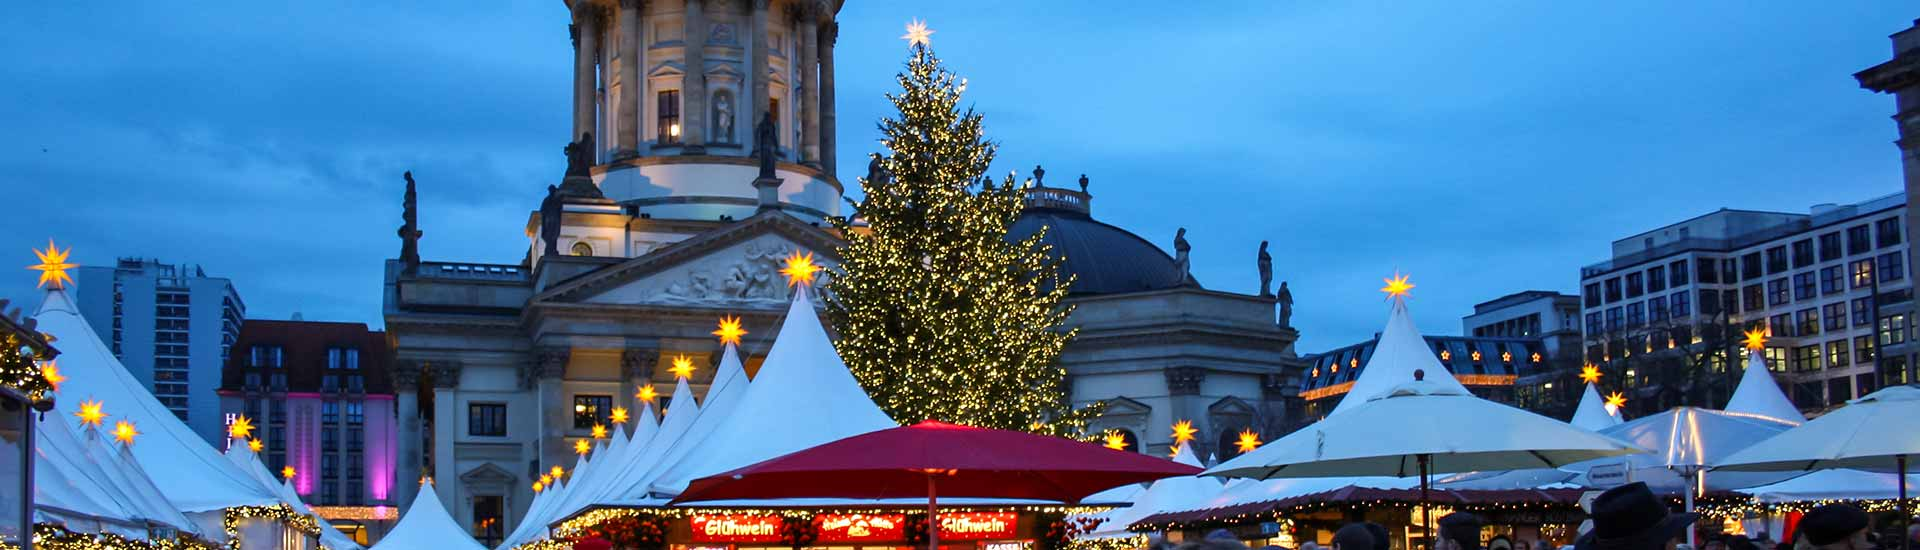 Berlin Christmas Market 2020 Best Berlin Christmas Markets (2020 Dates and Location)